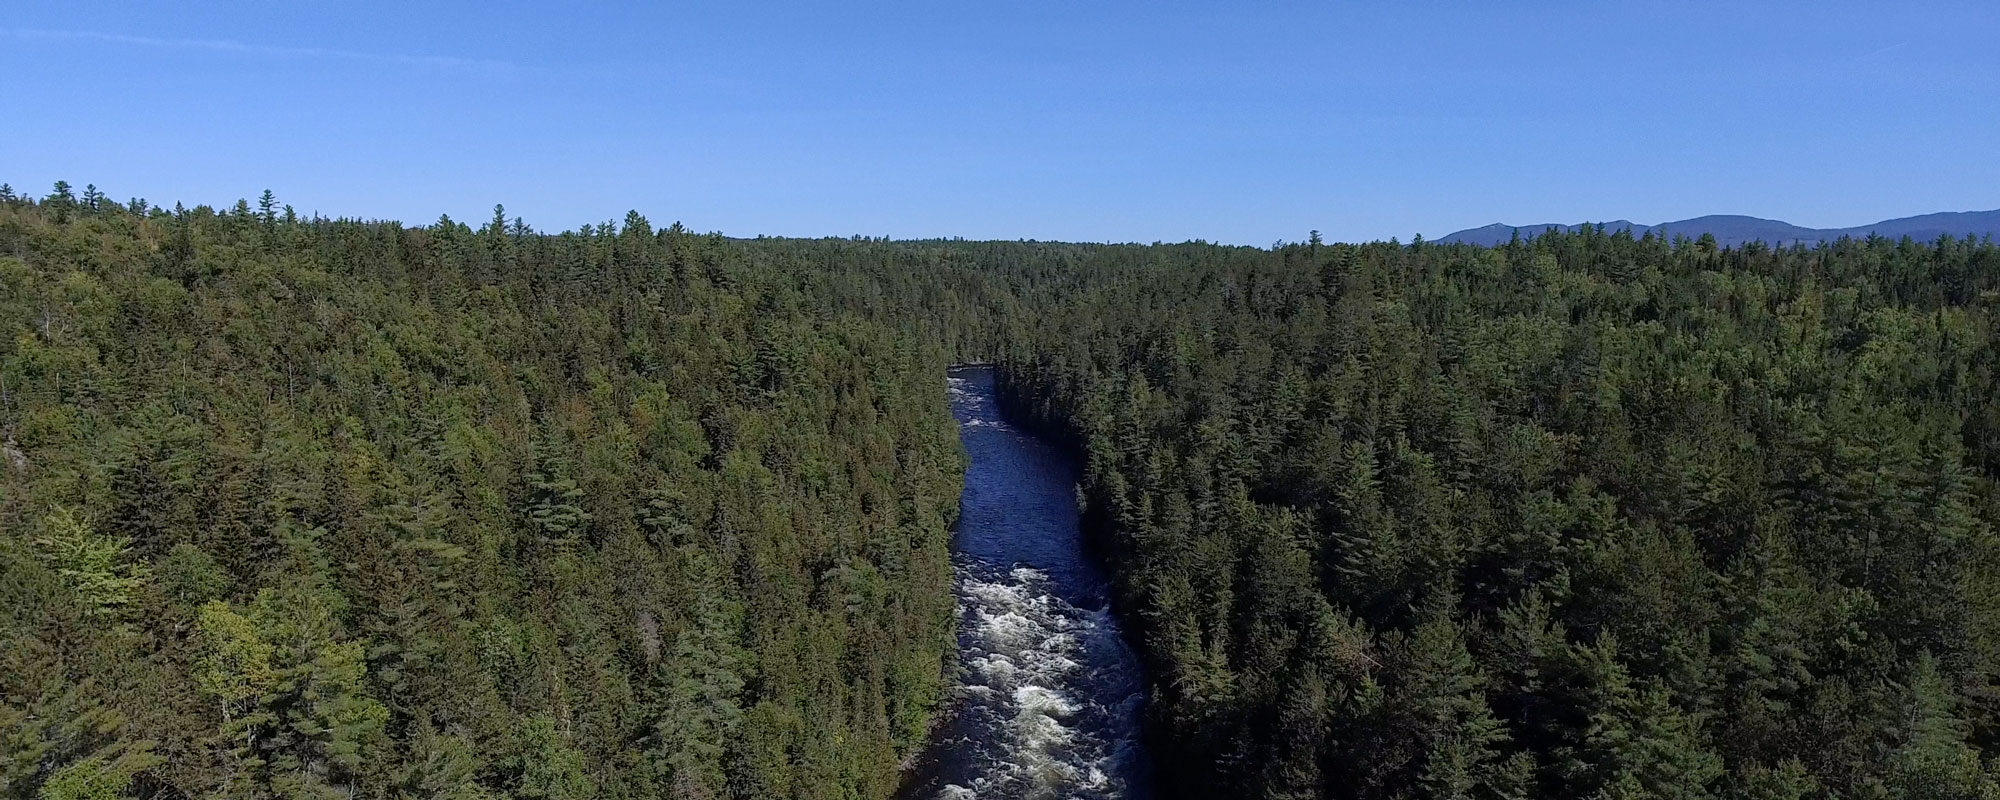 Kennebec River Gorge Drone Arial